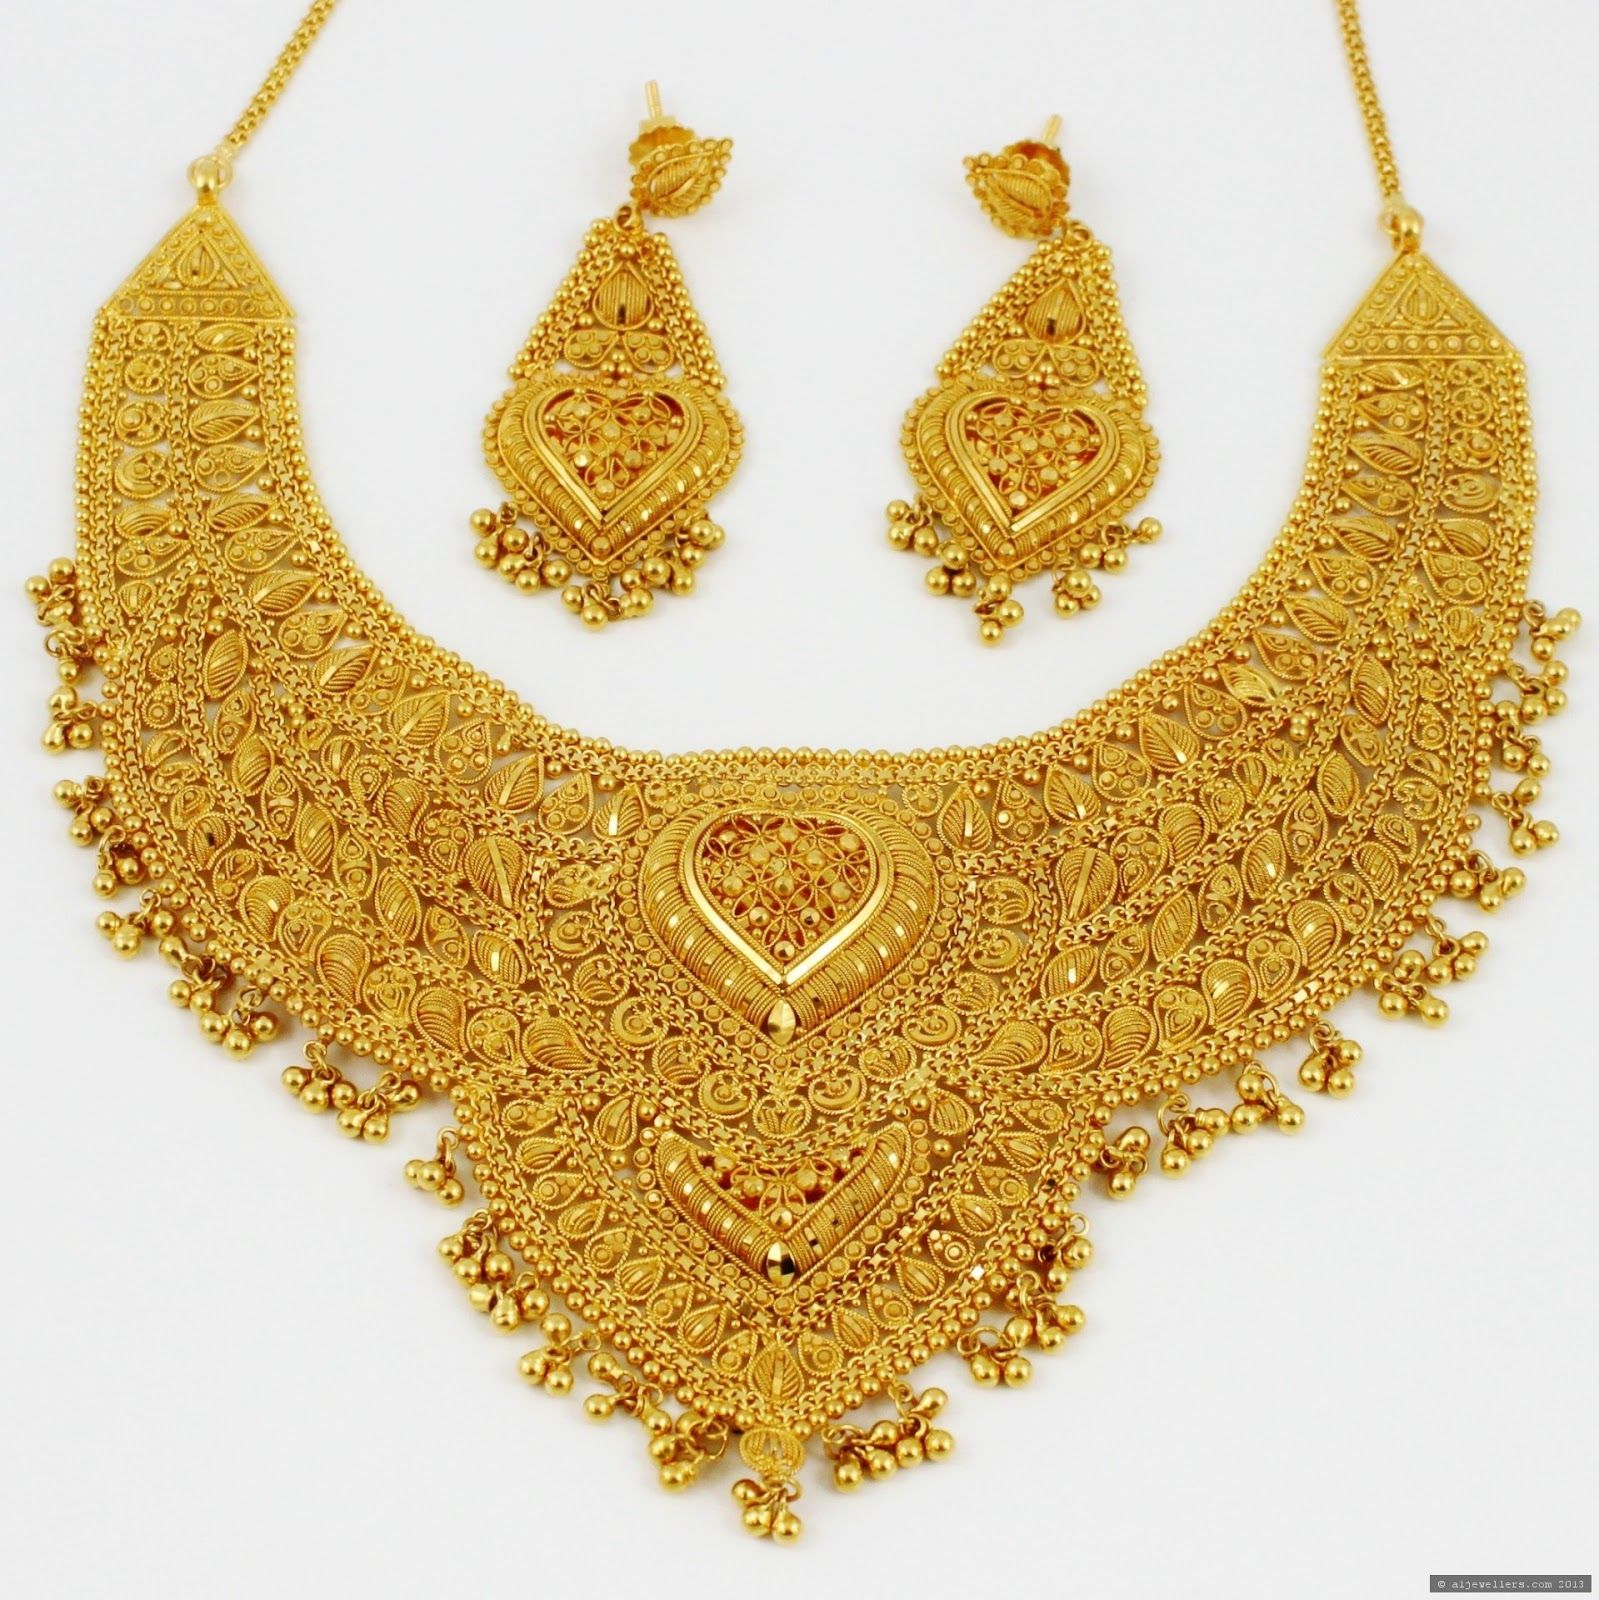 haar jewellery wm gold rani set necklace harr indian sets img